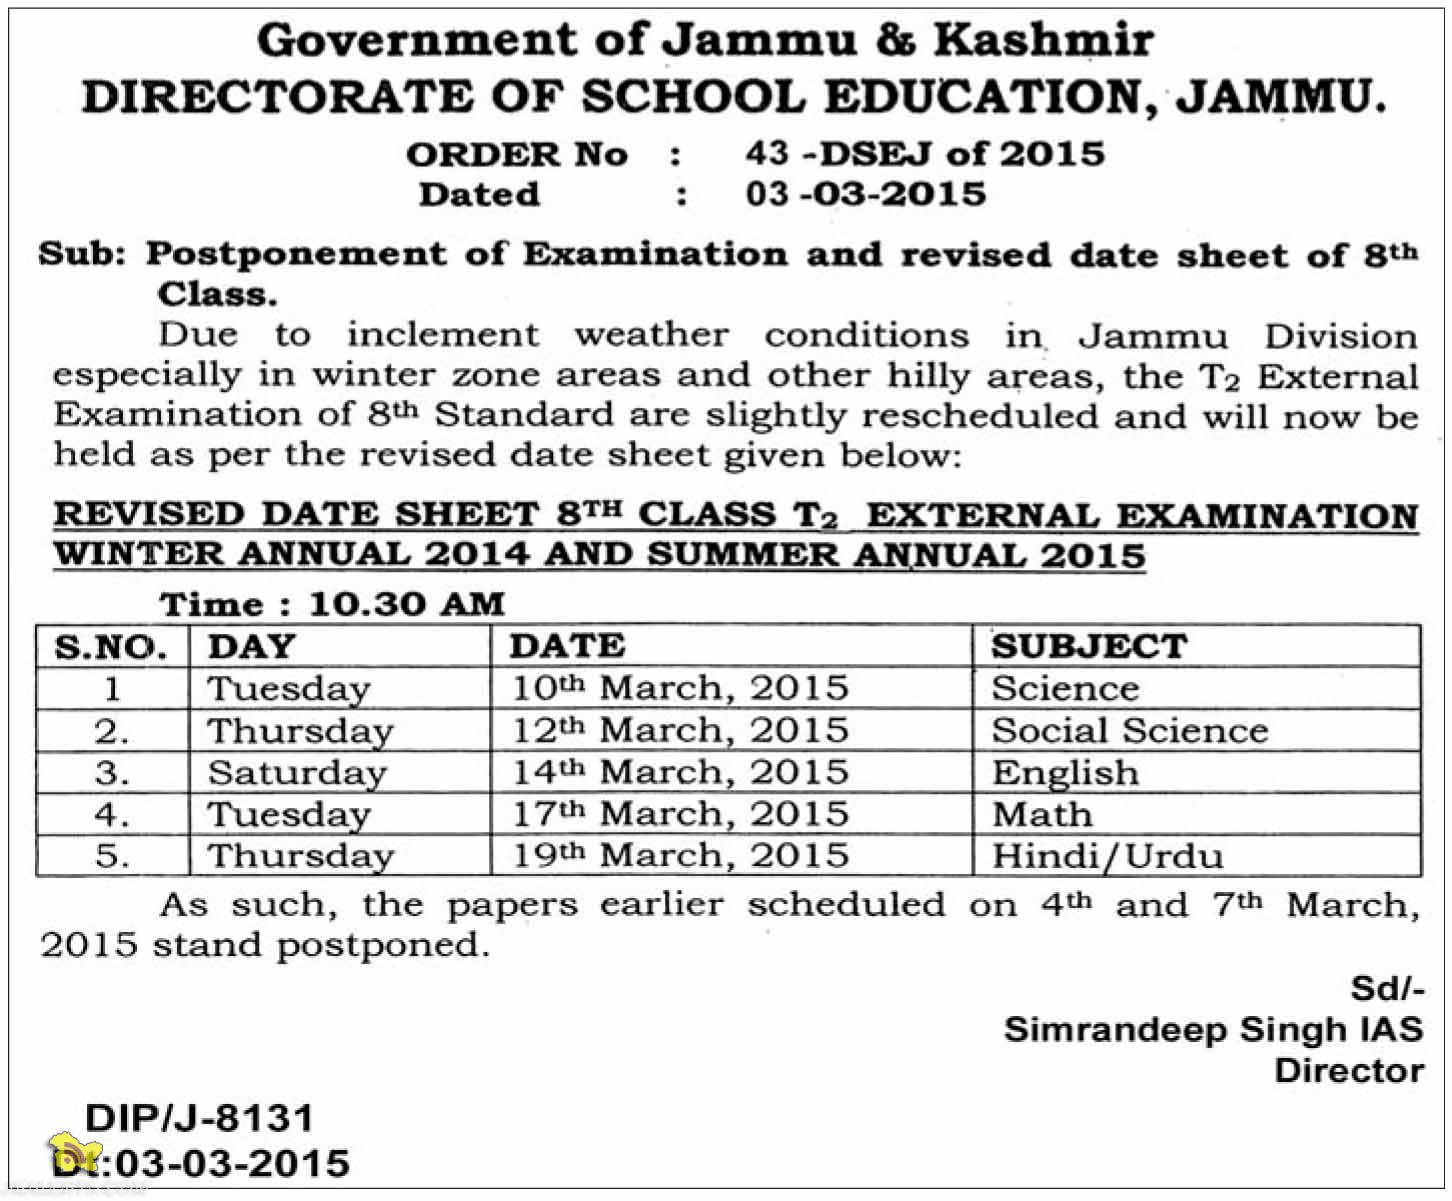 REVISED DATE SHEET 8th CLASS T2 EXTERNAL EXAMINATION WINTER ANNUAL 2014 AND SUMMER ANNUAL 2015